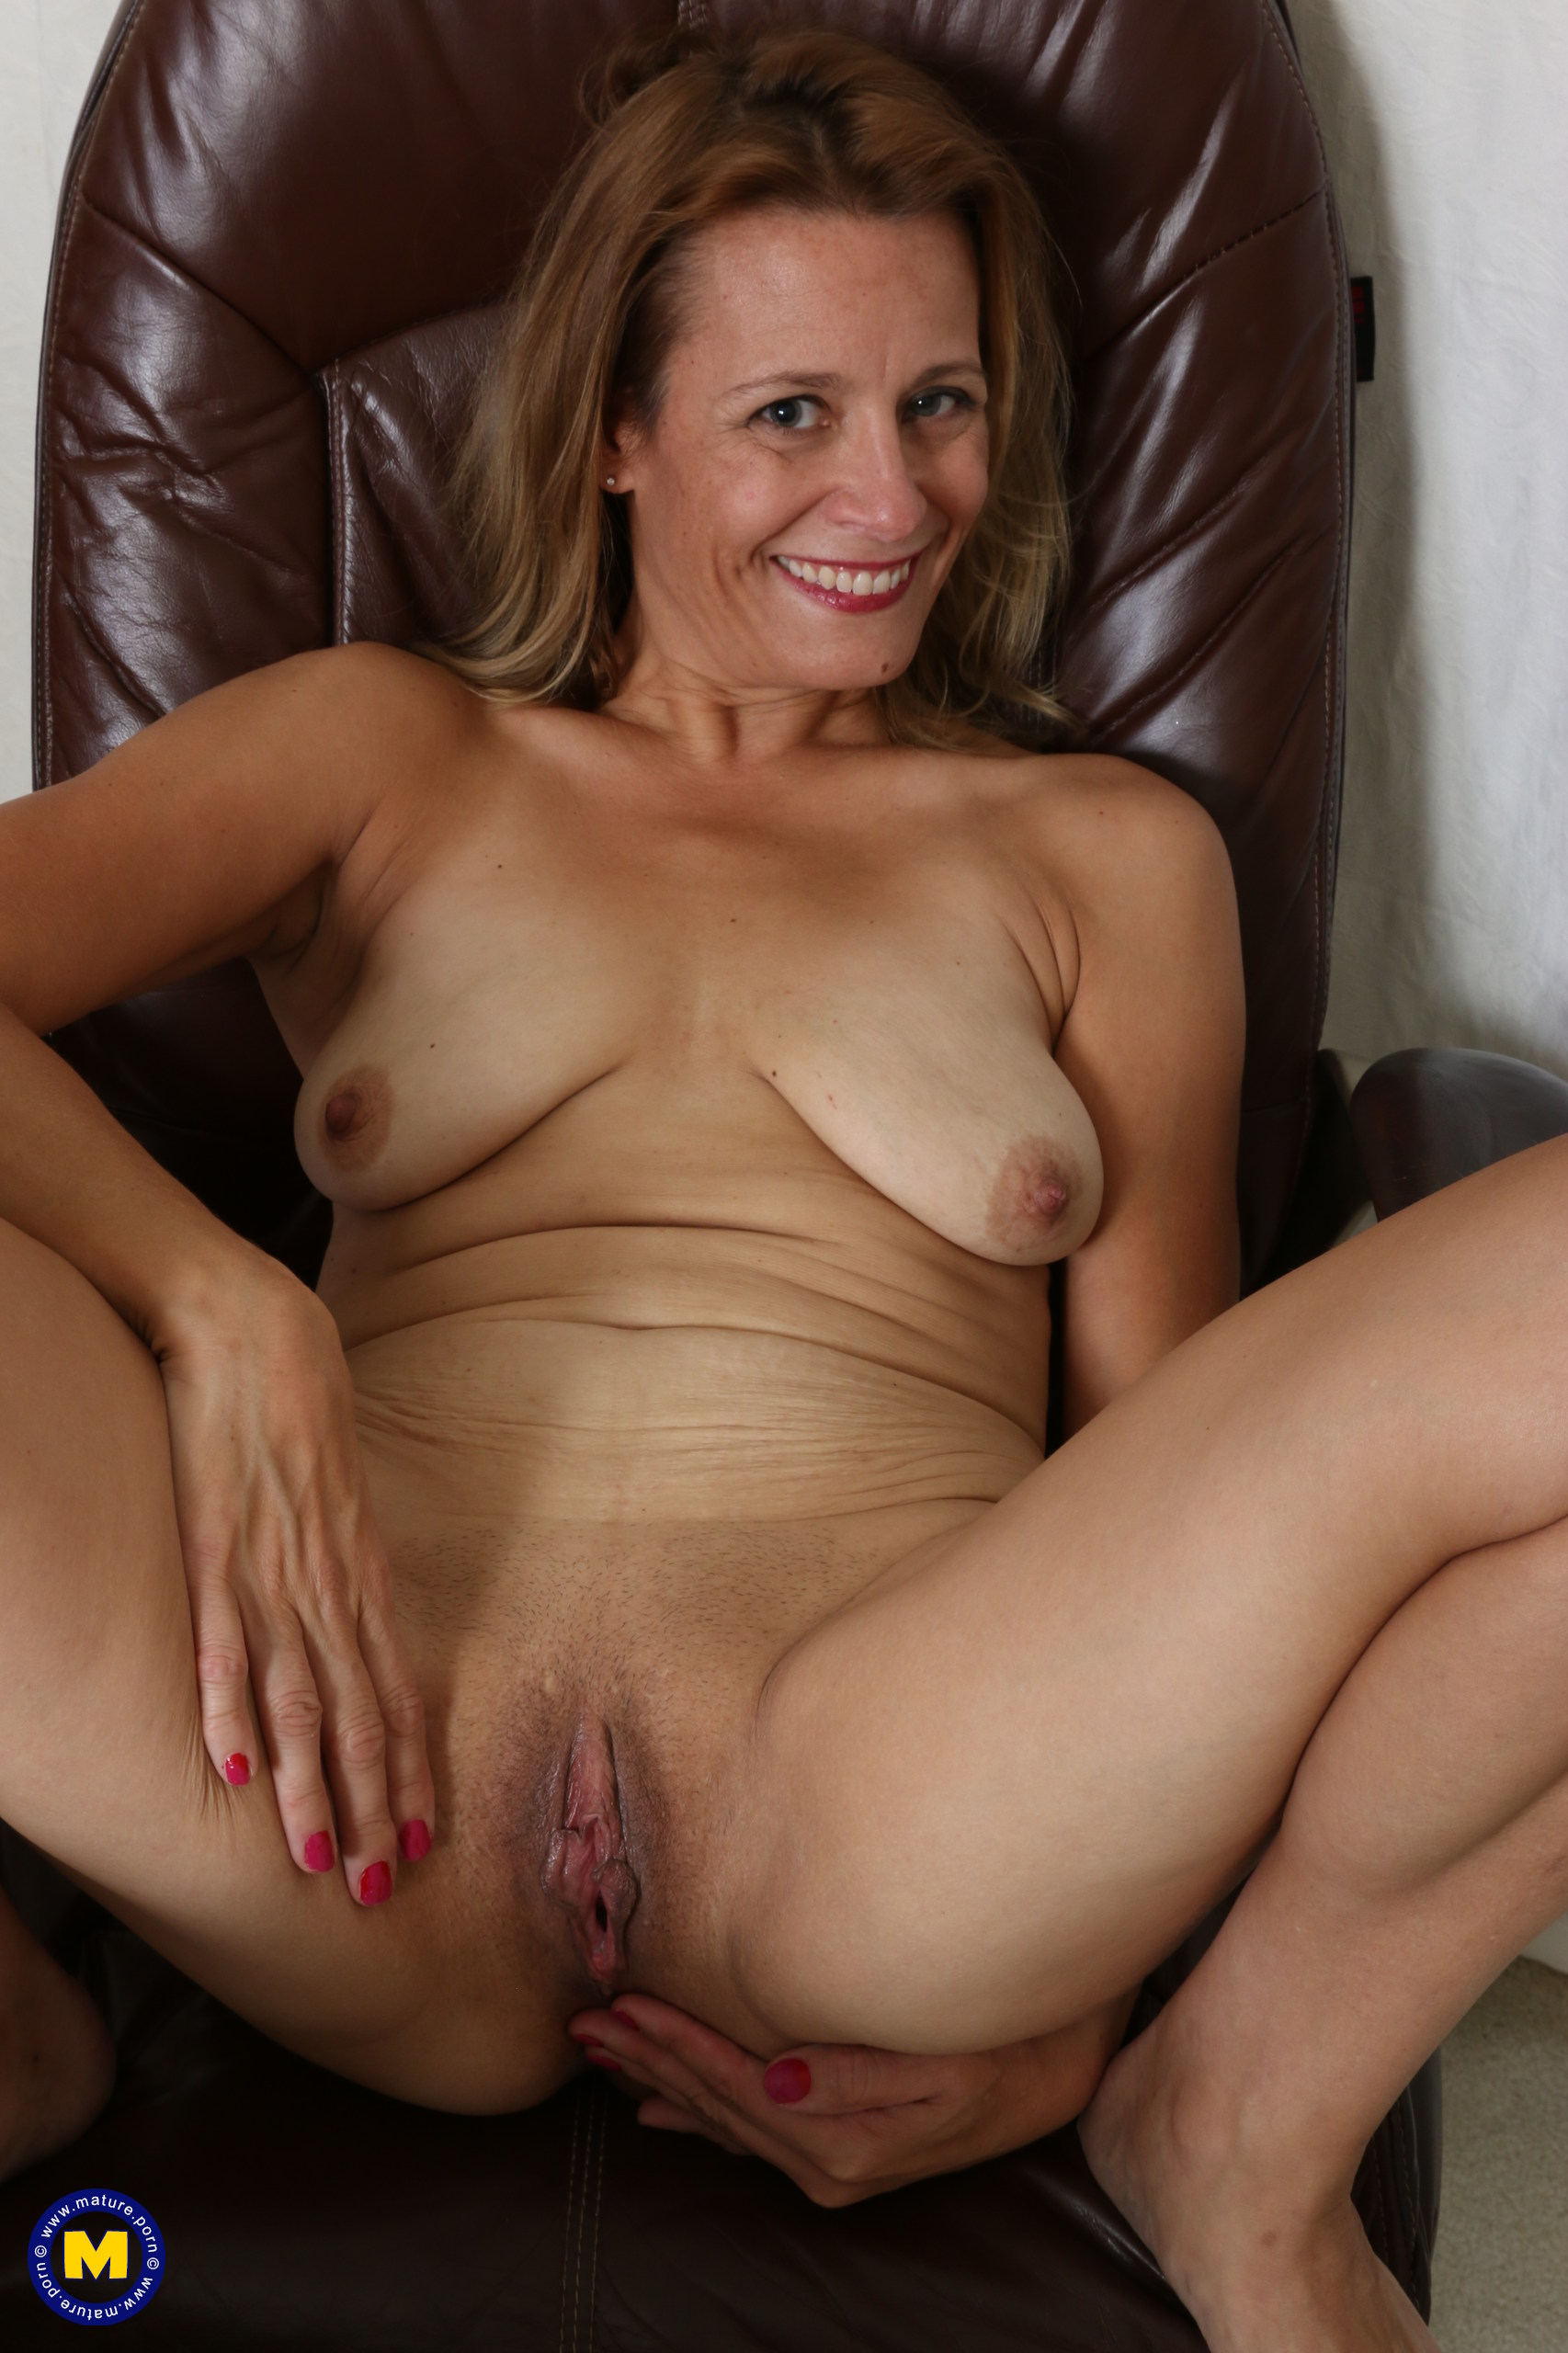 Divorced mature woman i met on a dating site 8